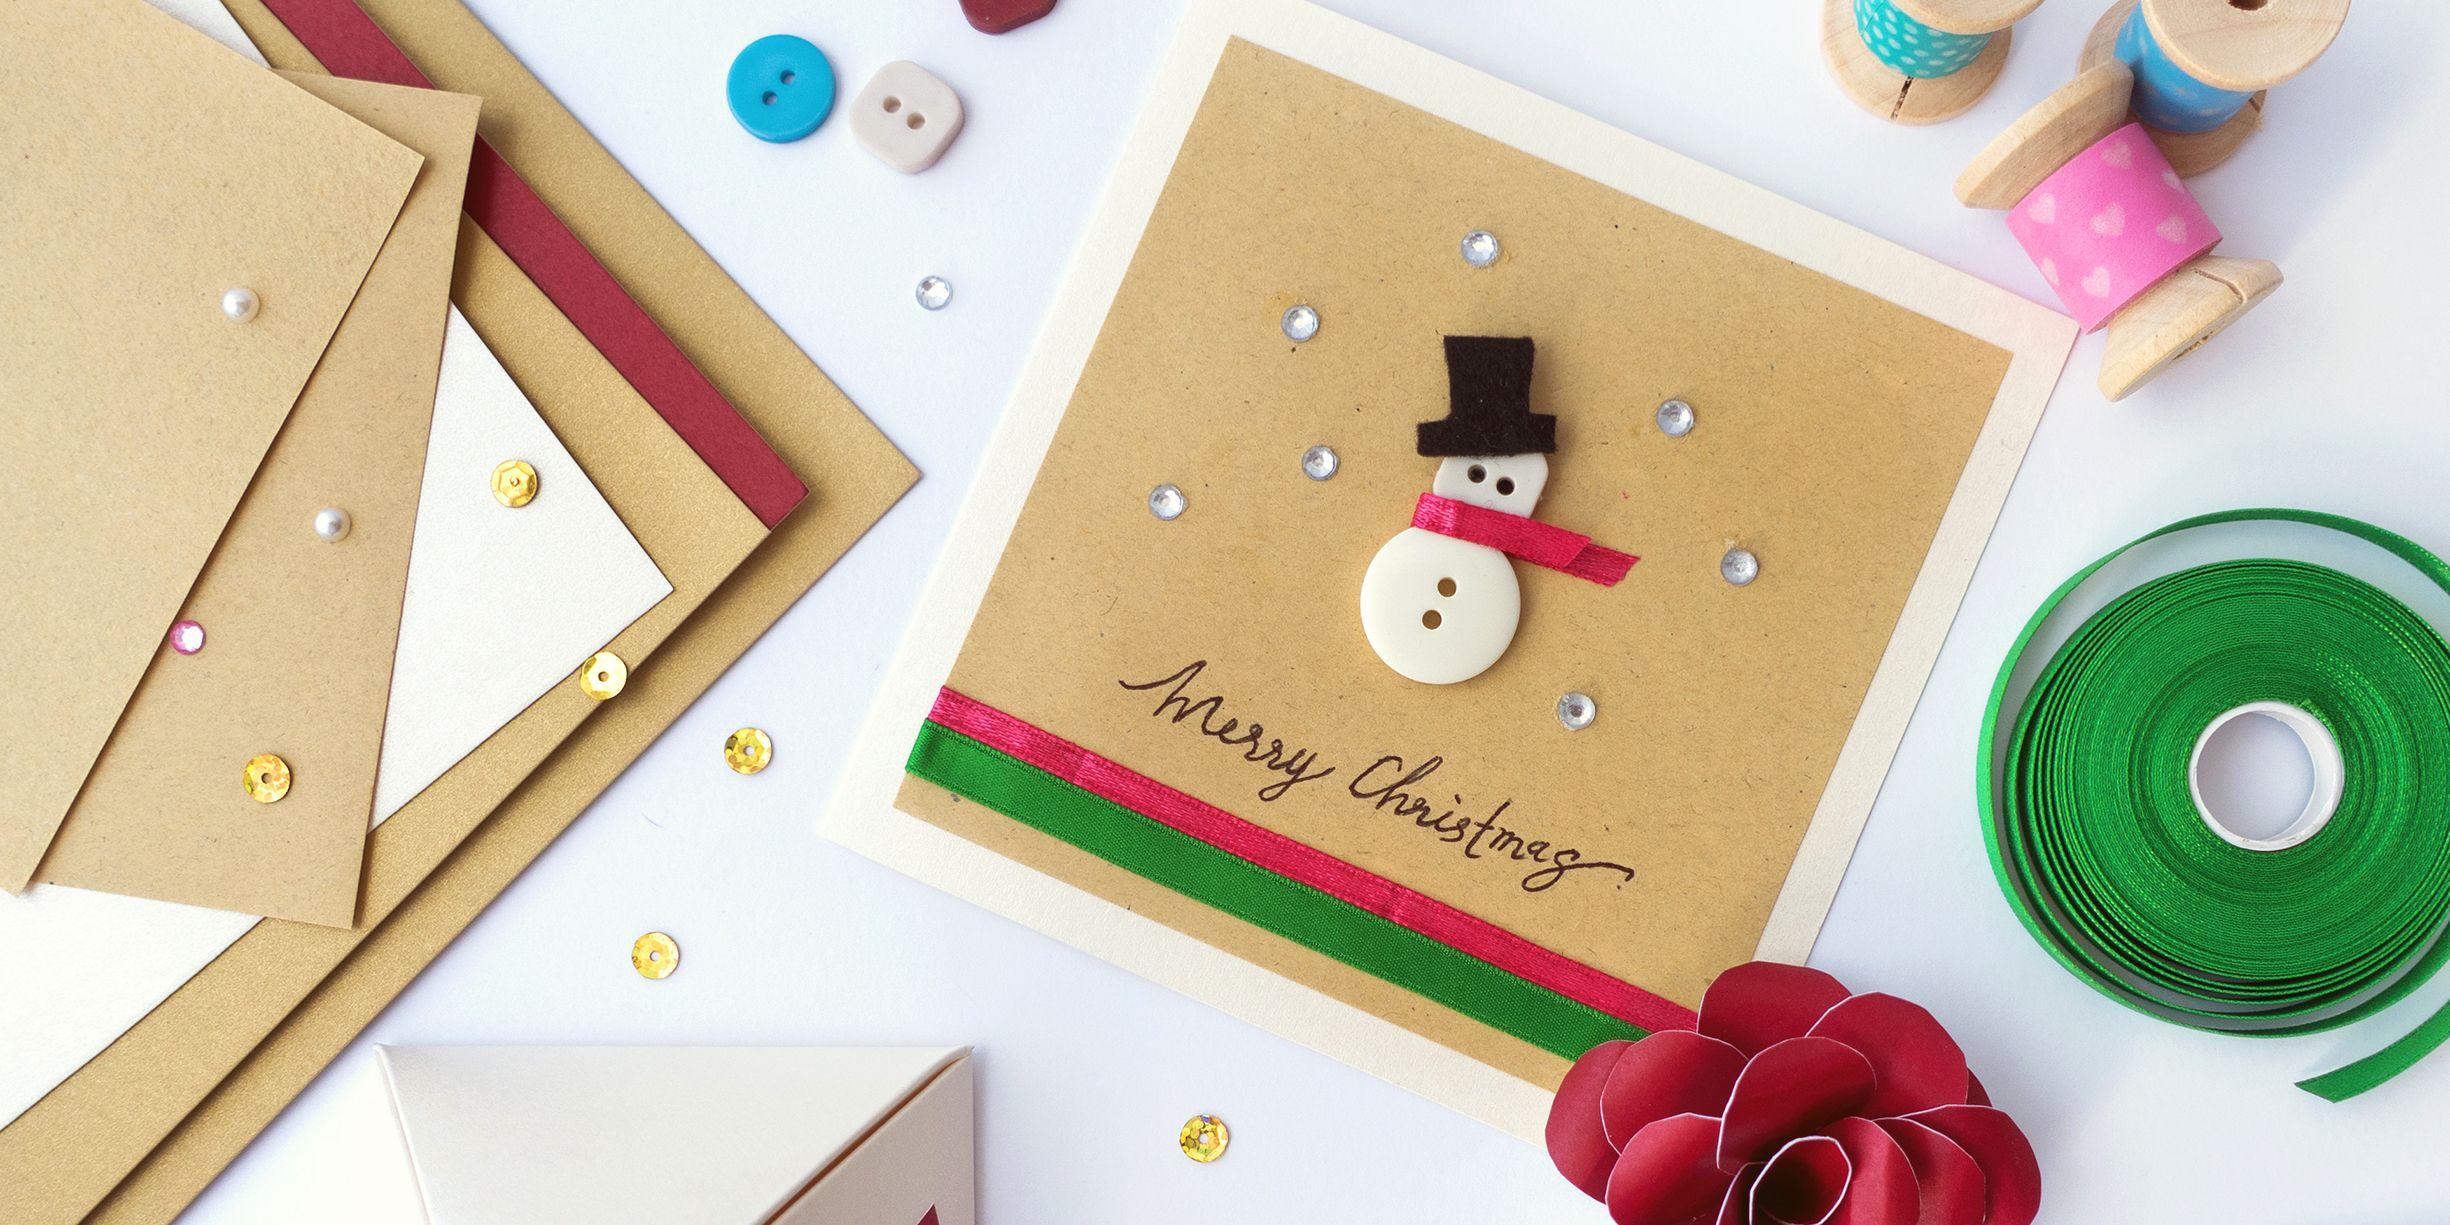 How to make greeting cards from my photos